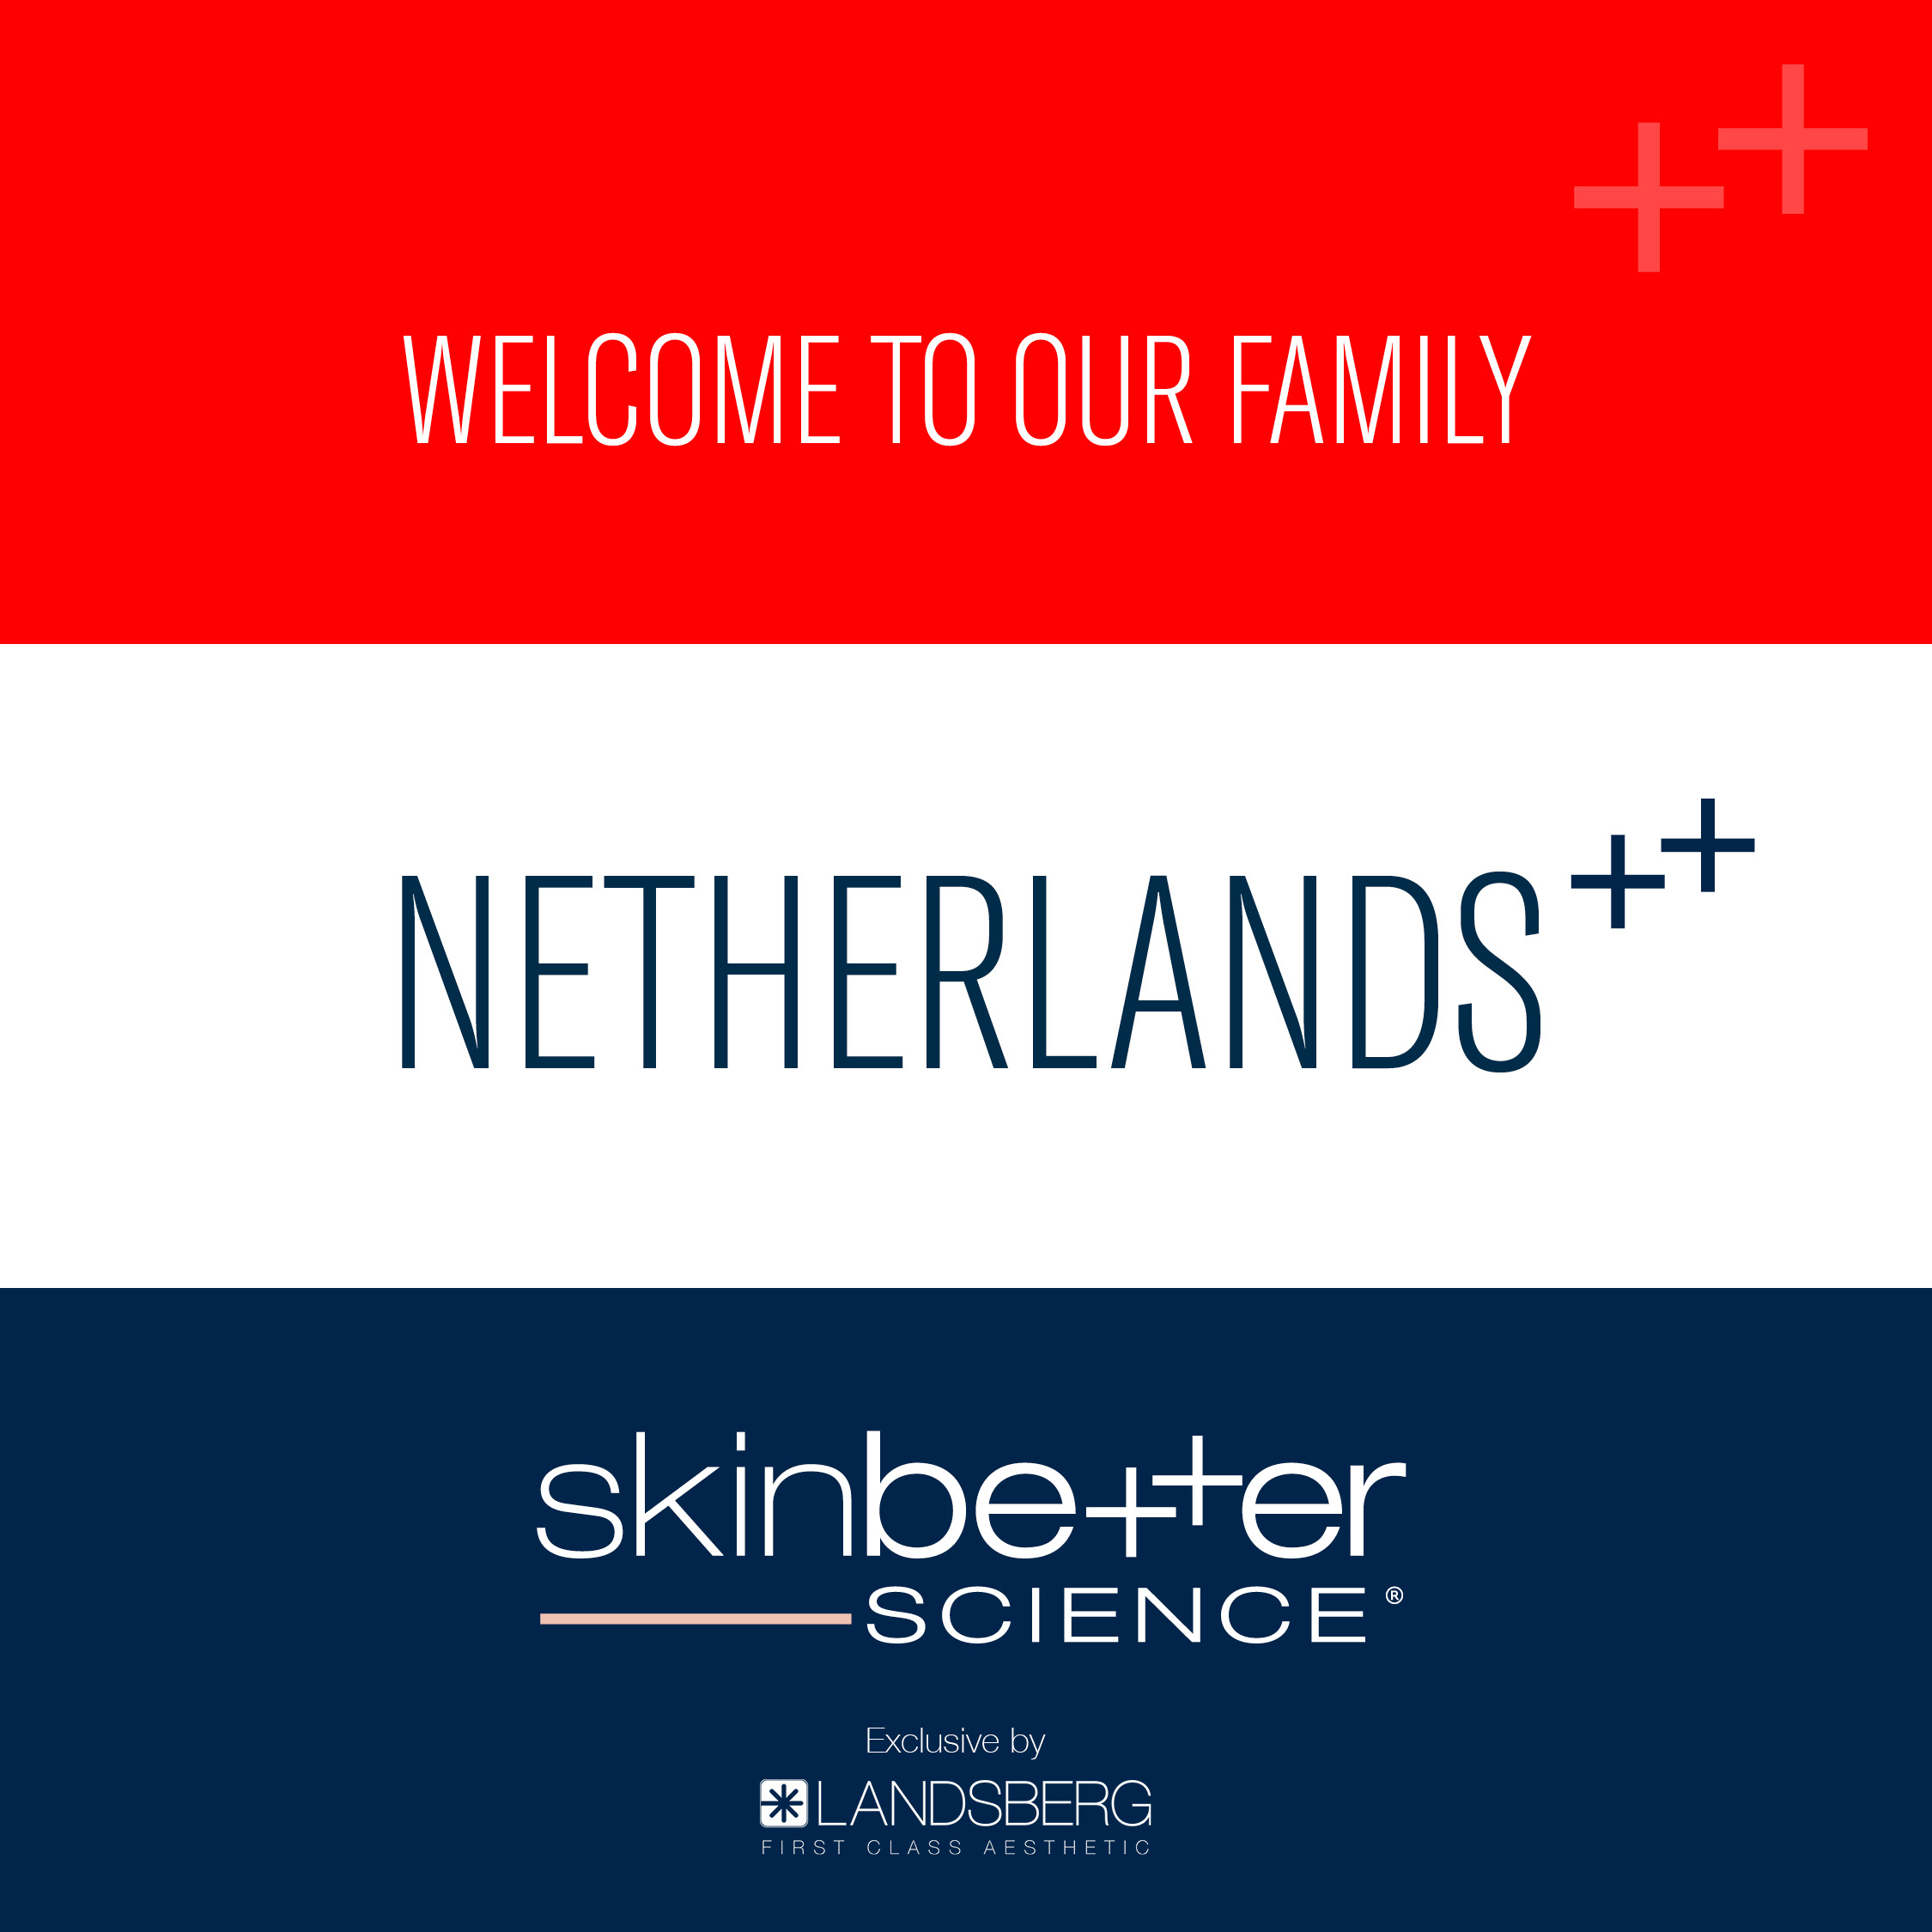 skinbetter science® – Now available in the Netherlands / Jetzt auch in den Niederlanden